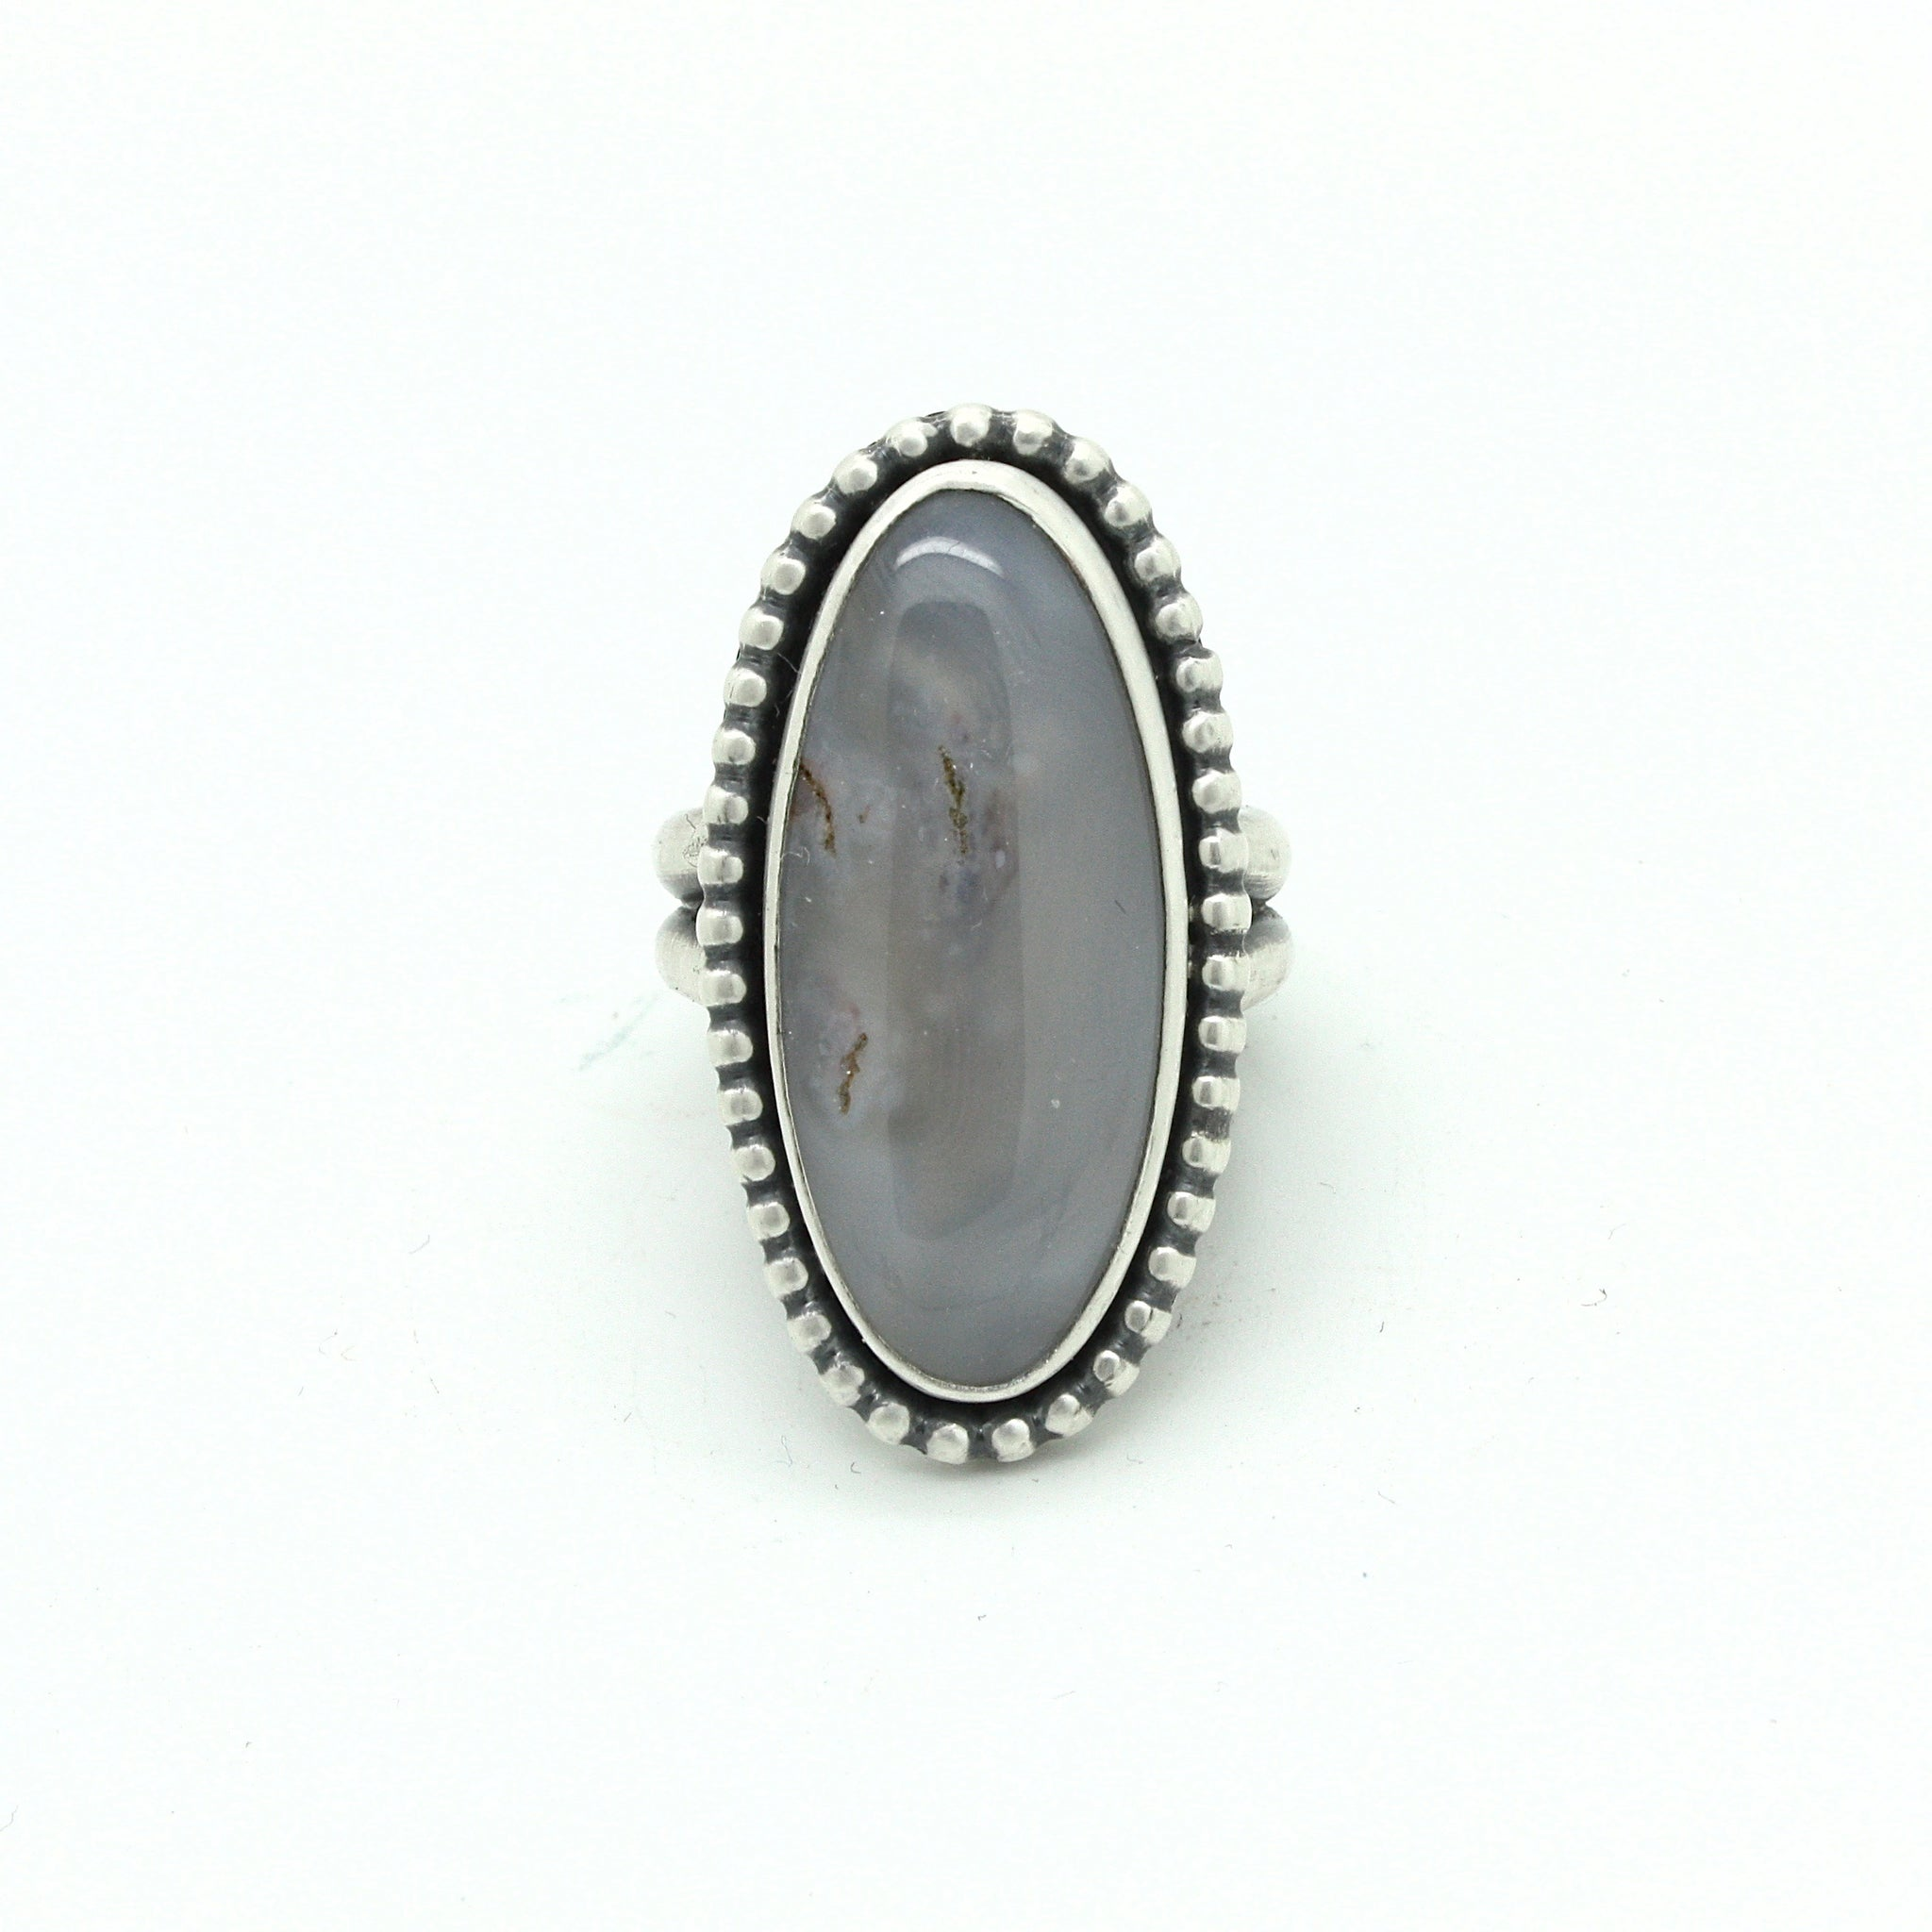 Agate Ring | Size 8.25